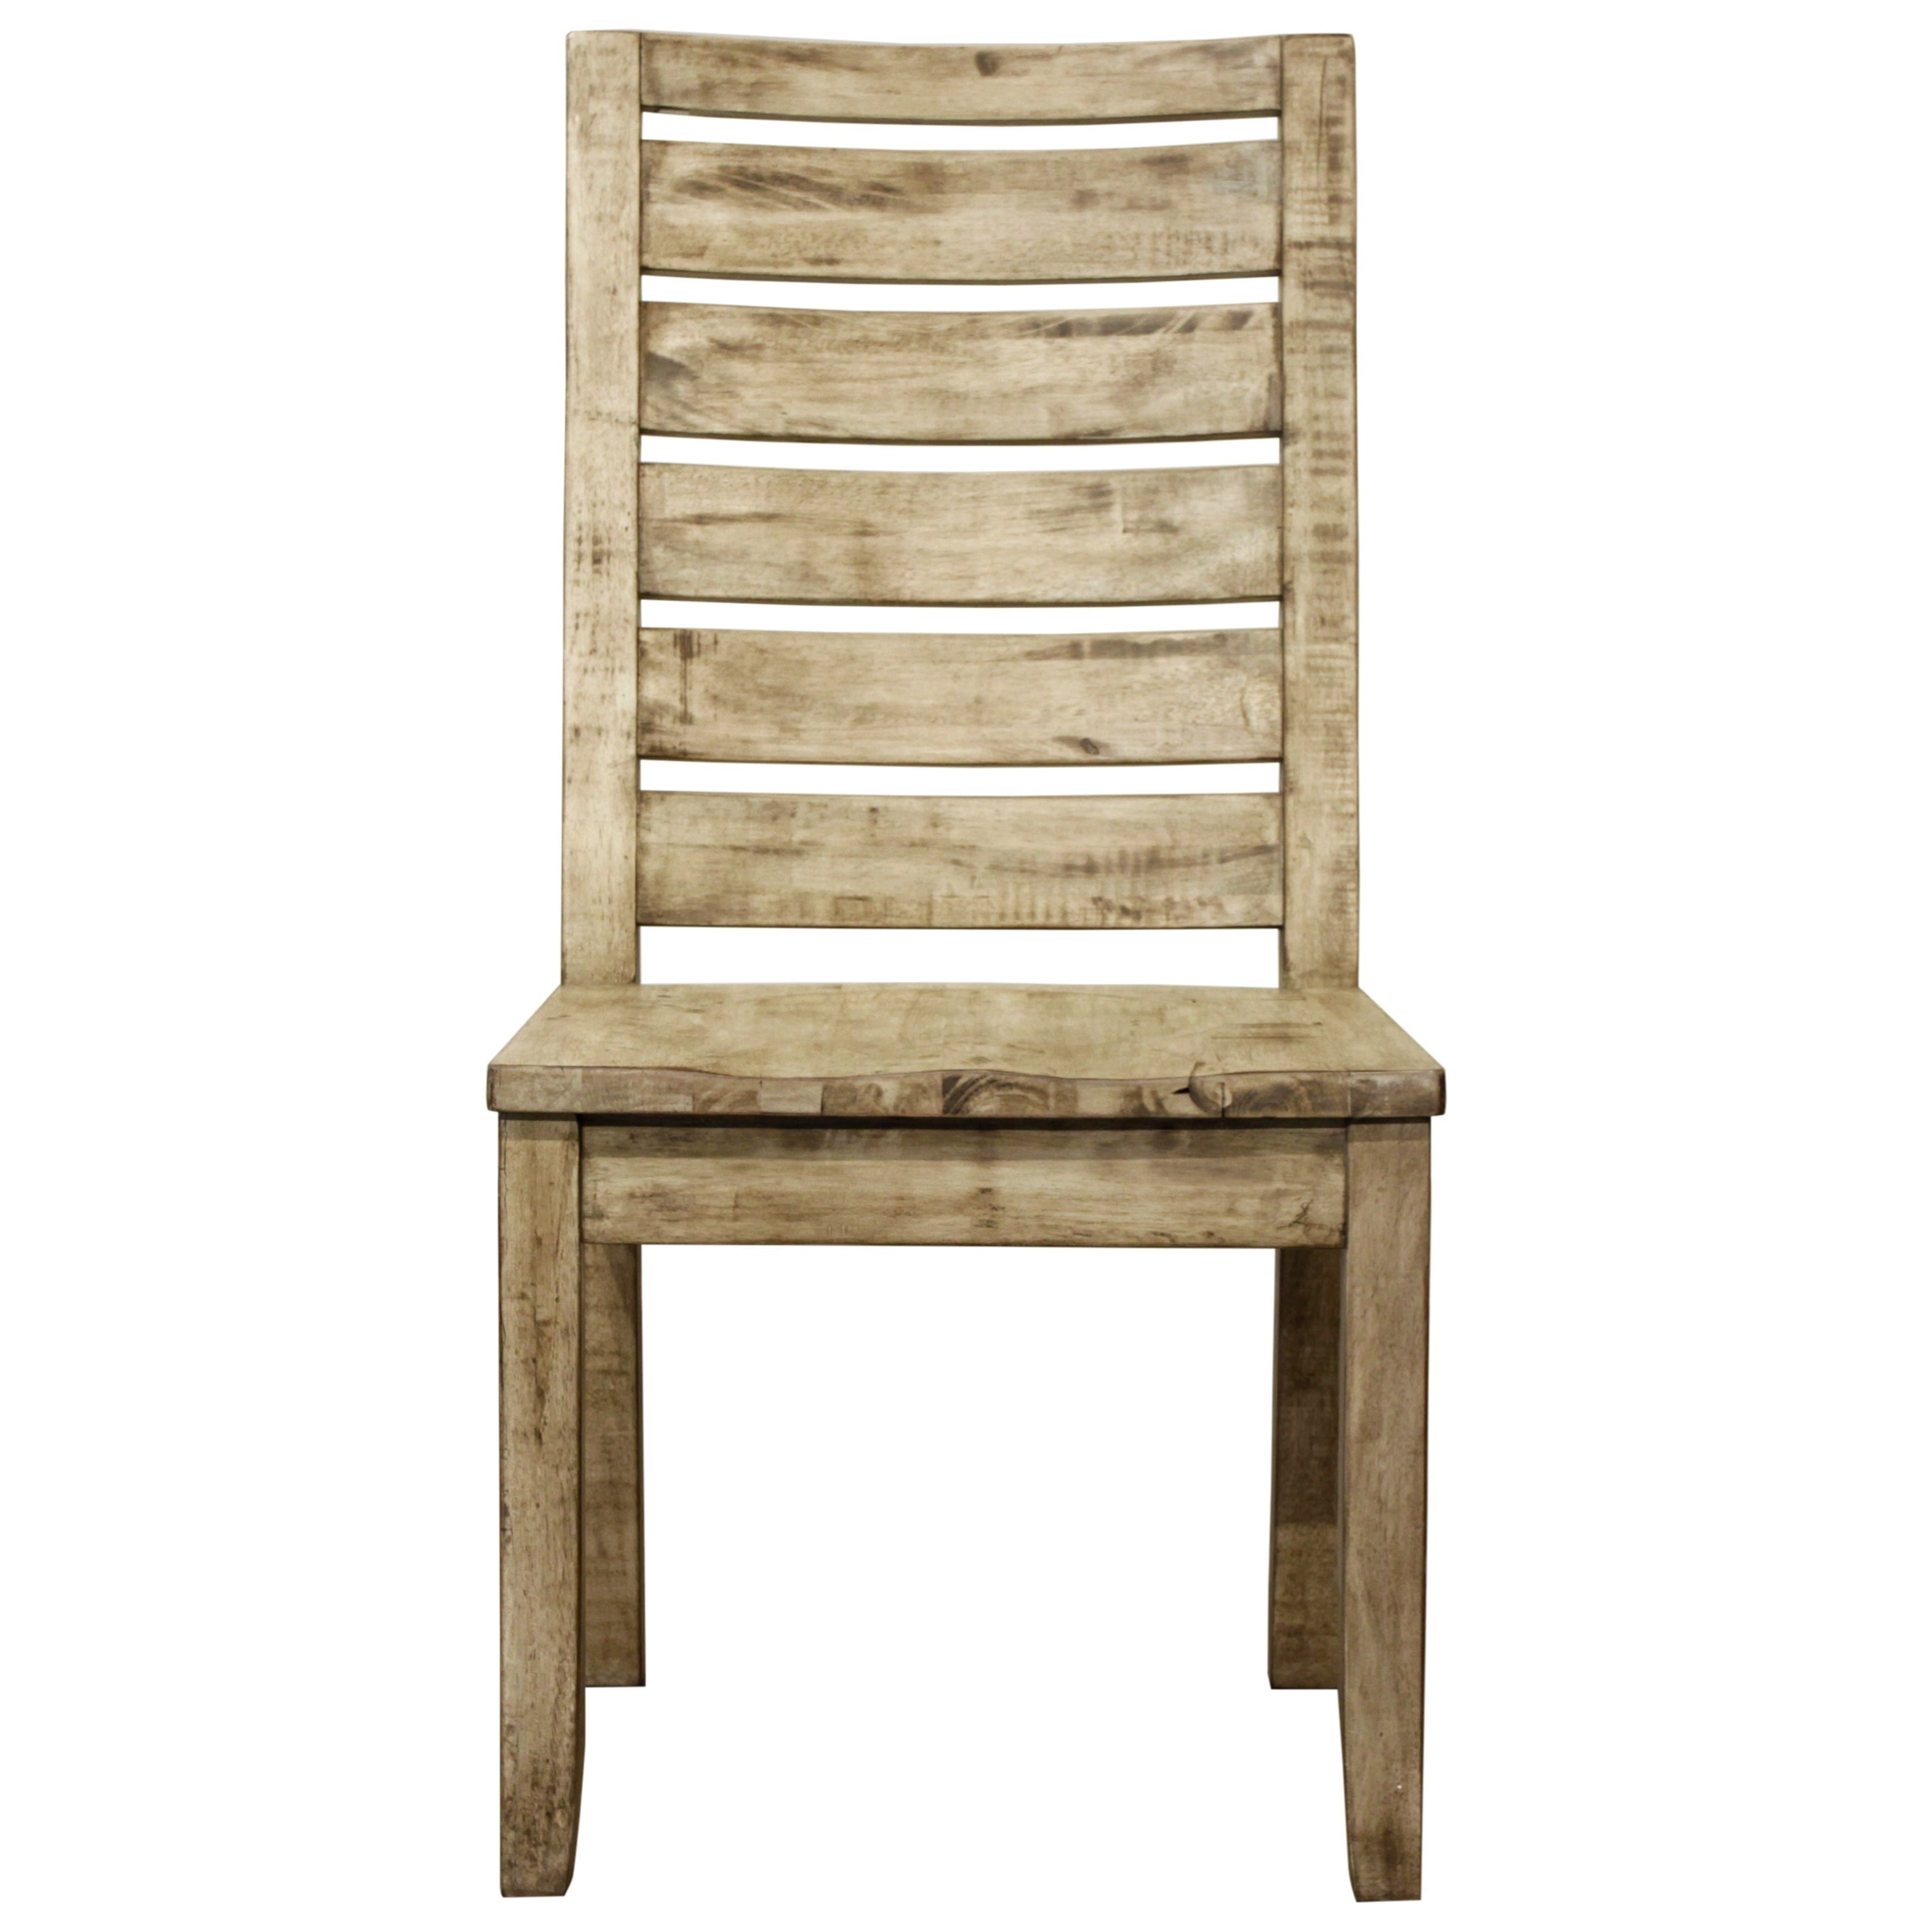 Renewal by Napa Dining Side Chair by Napa Furniture Designs at Red Knot